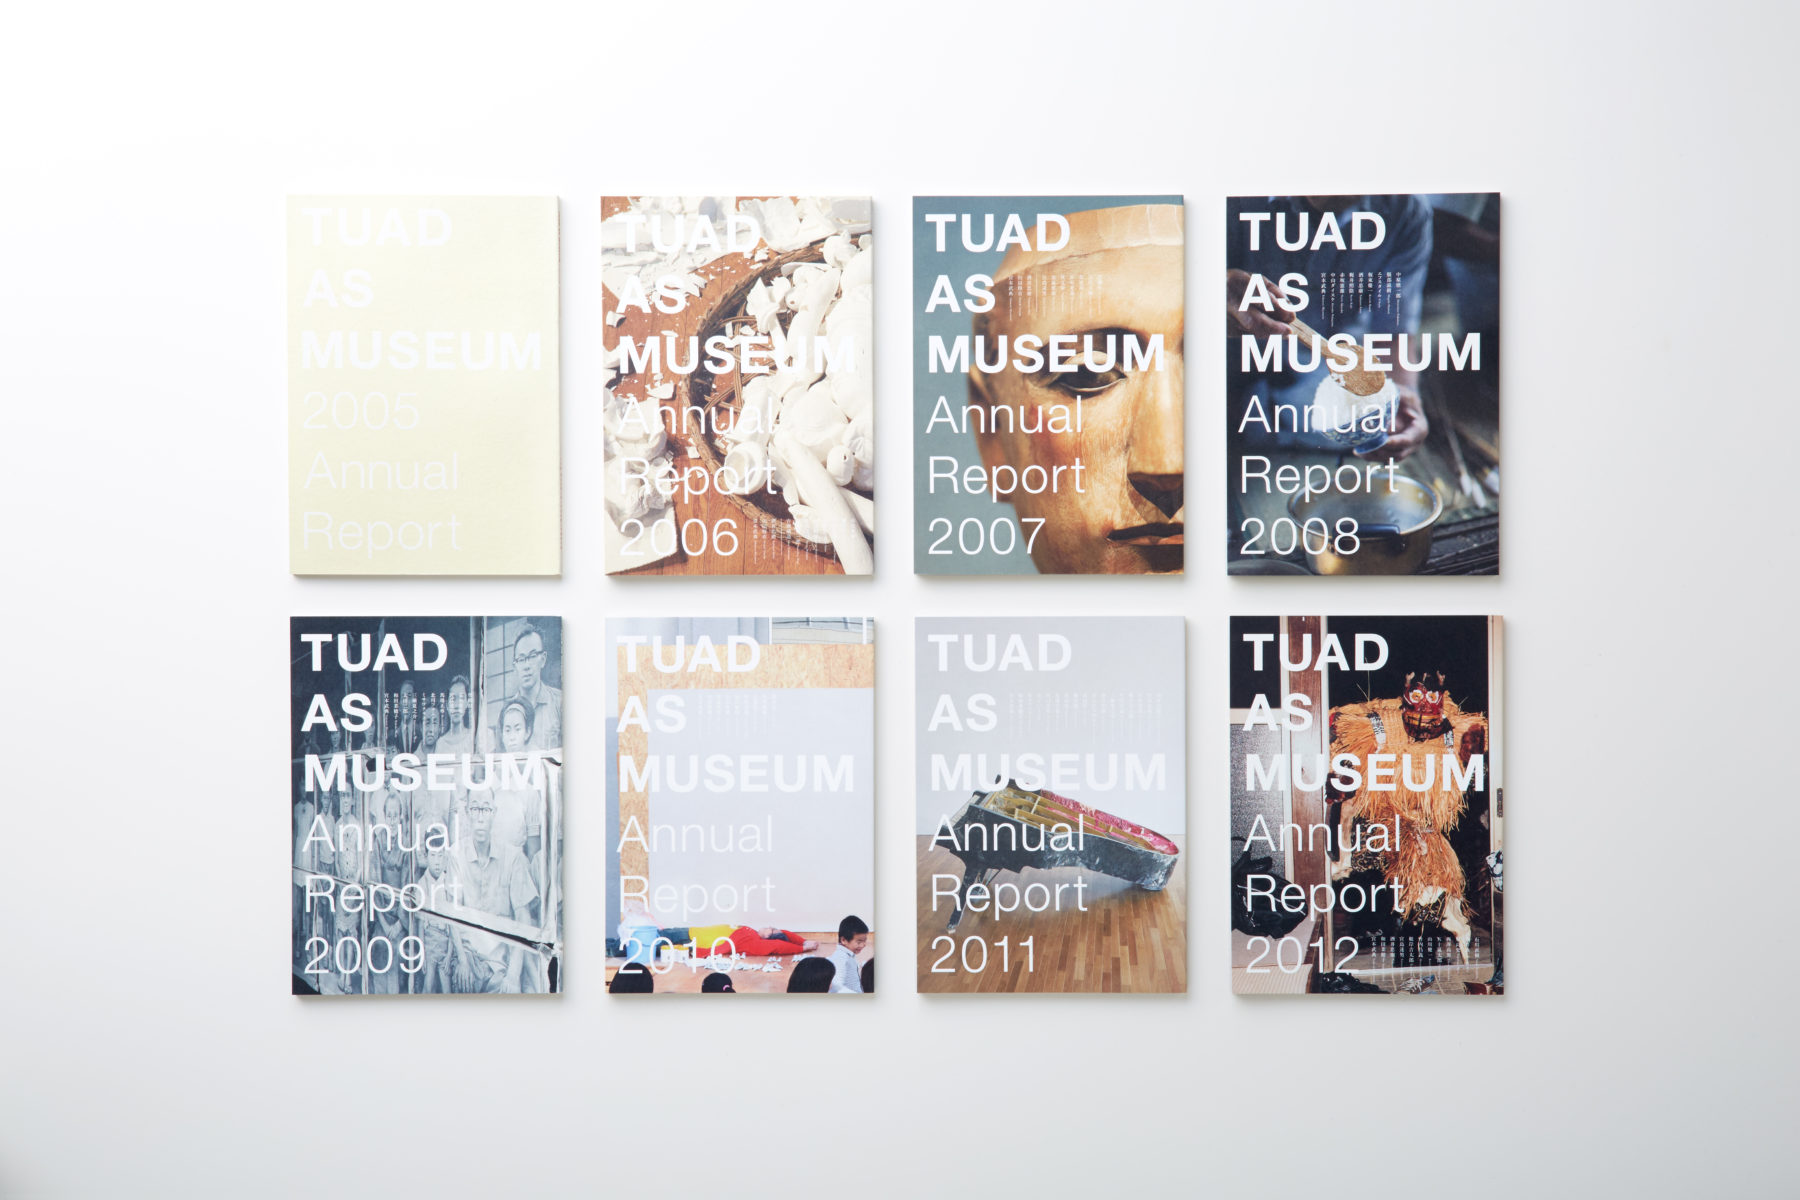 TUAD AS MUSEUM(2005-2012)